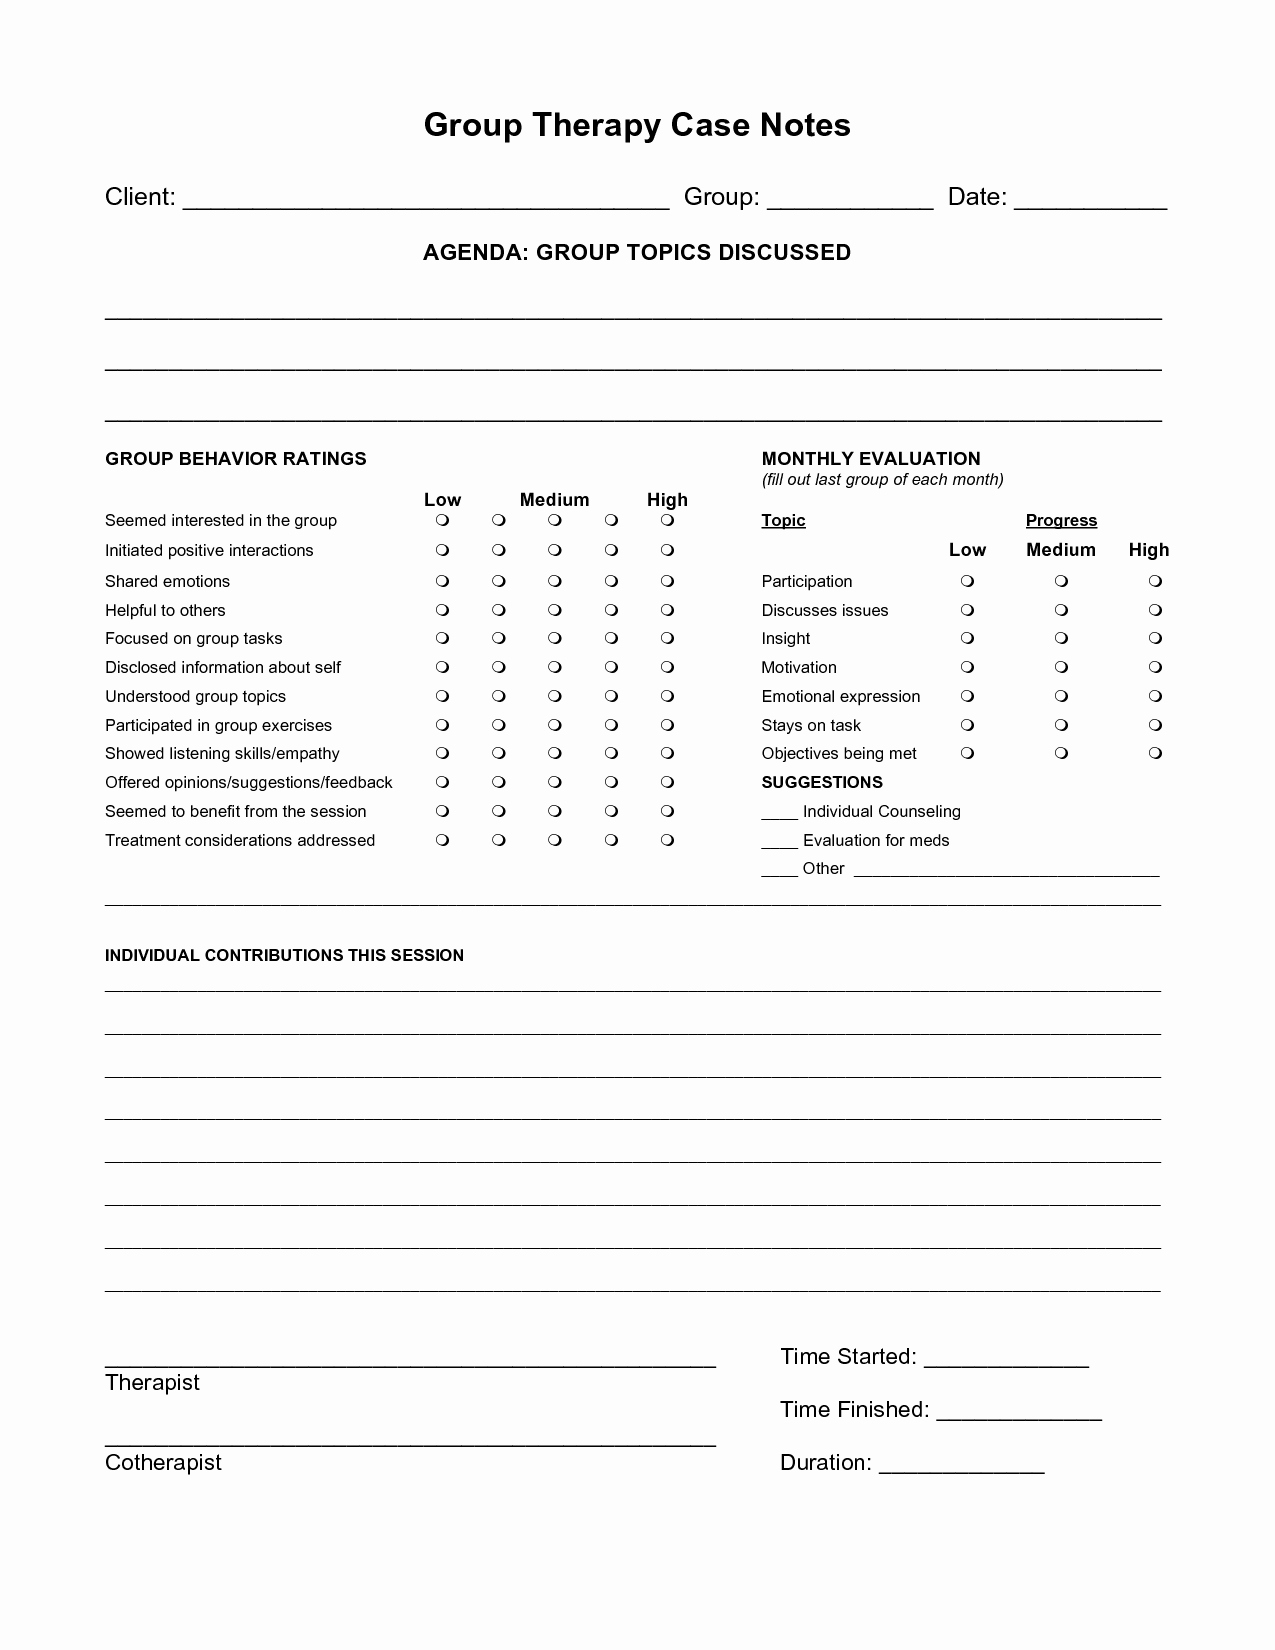 Case Management Notes Template Best Of Free Case Note Templates Group therapy Case Notes